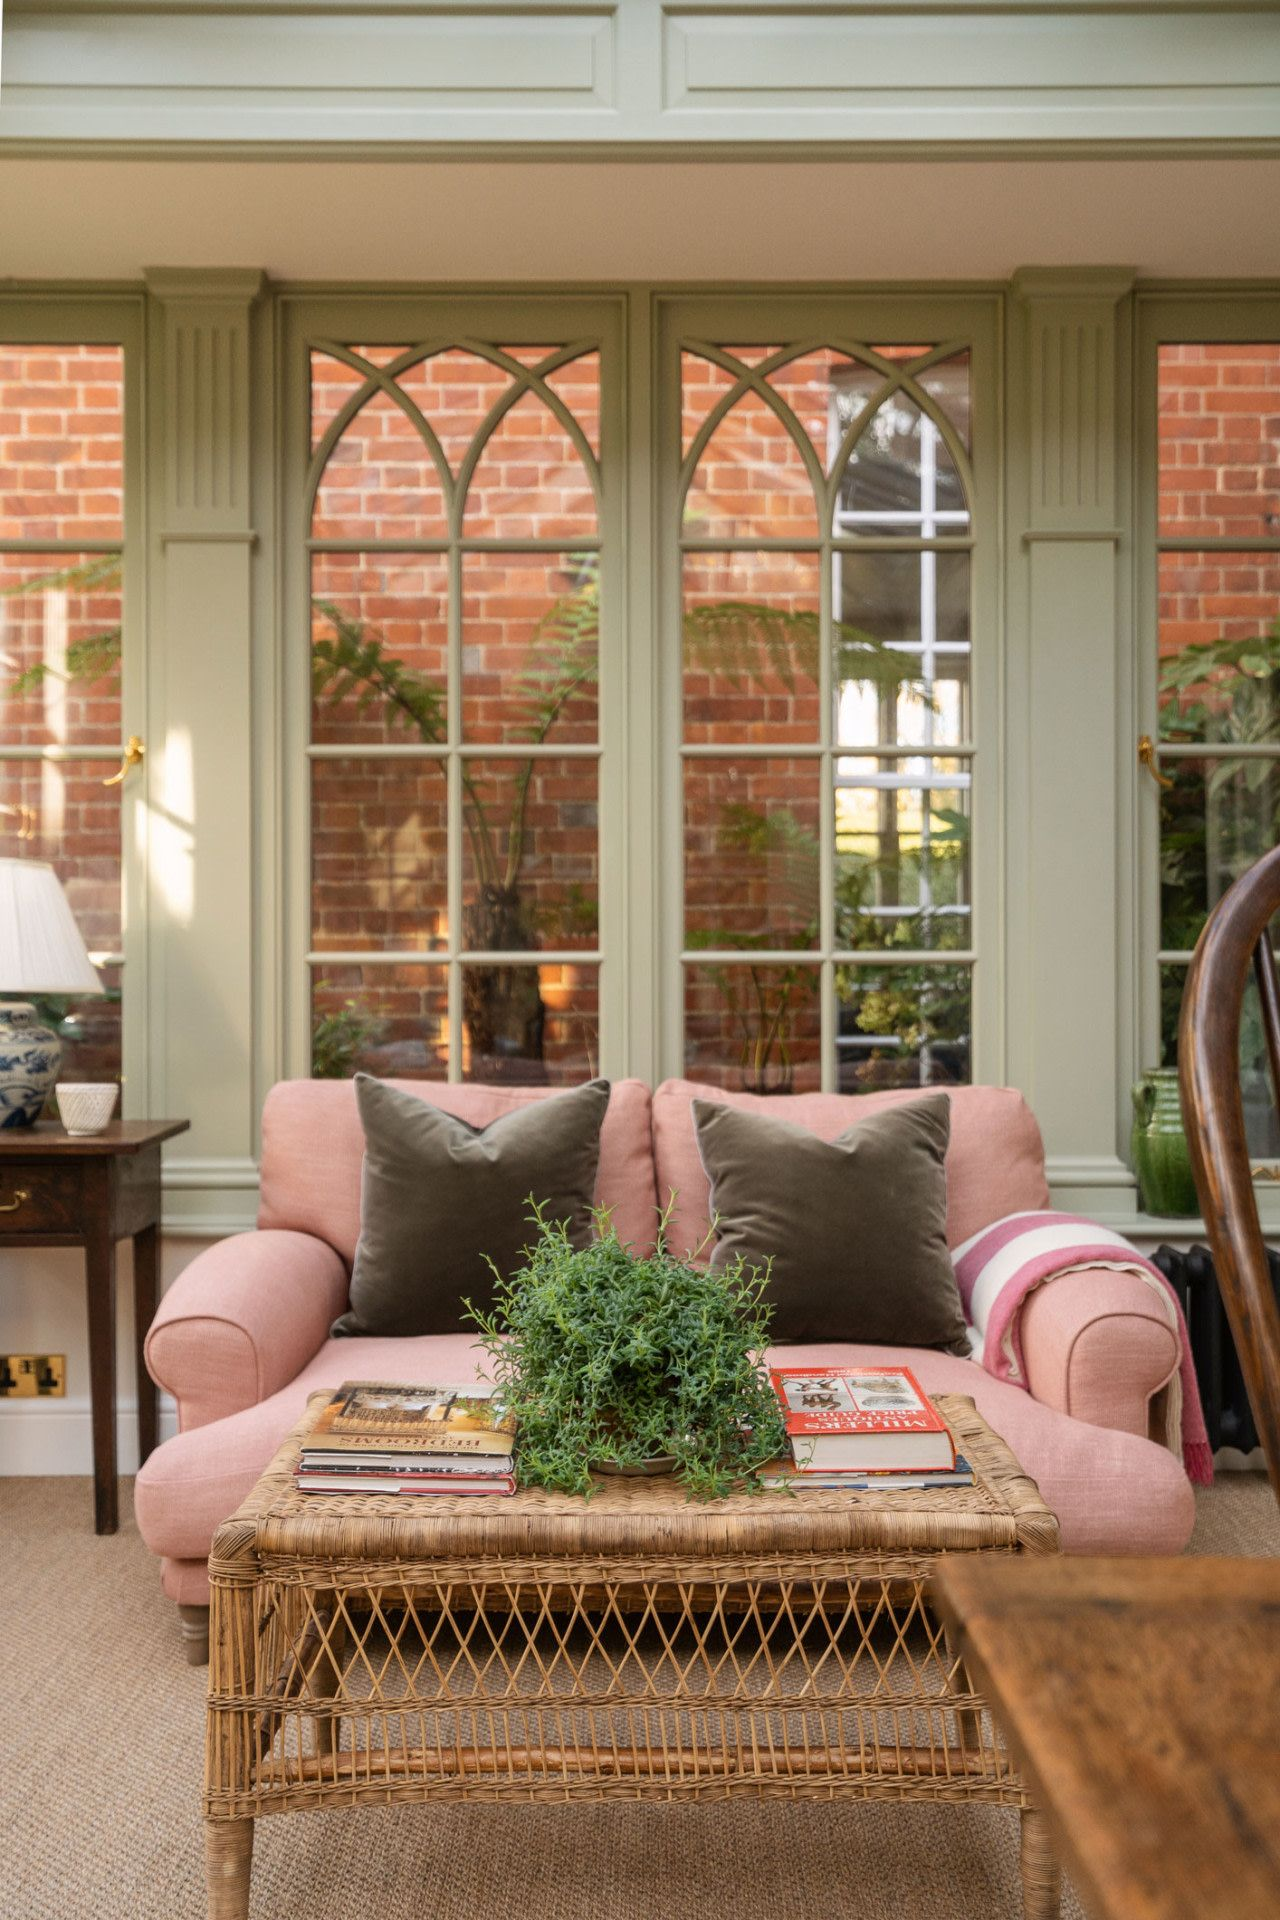 Our Bright Orangery   Front Roe by Louise Roe in 2021   Living room decor inspiration, House ...